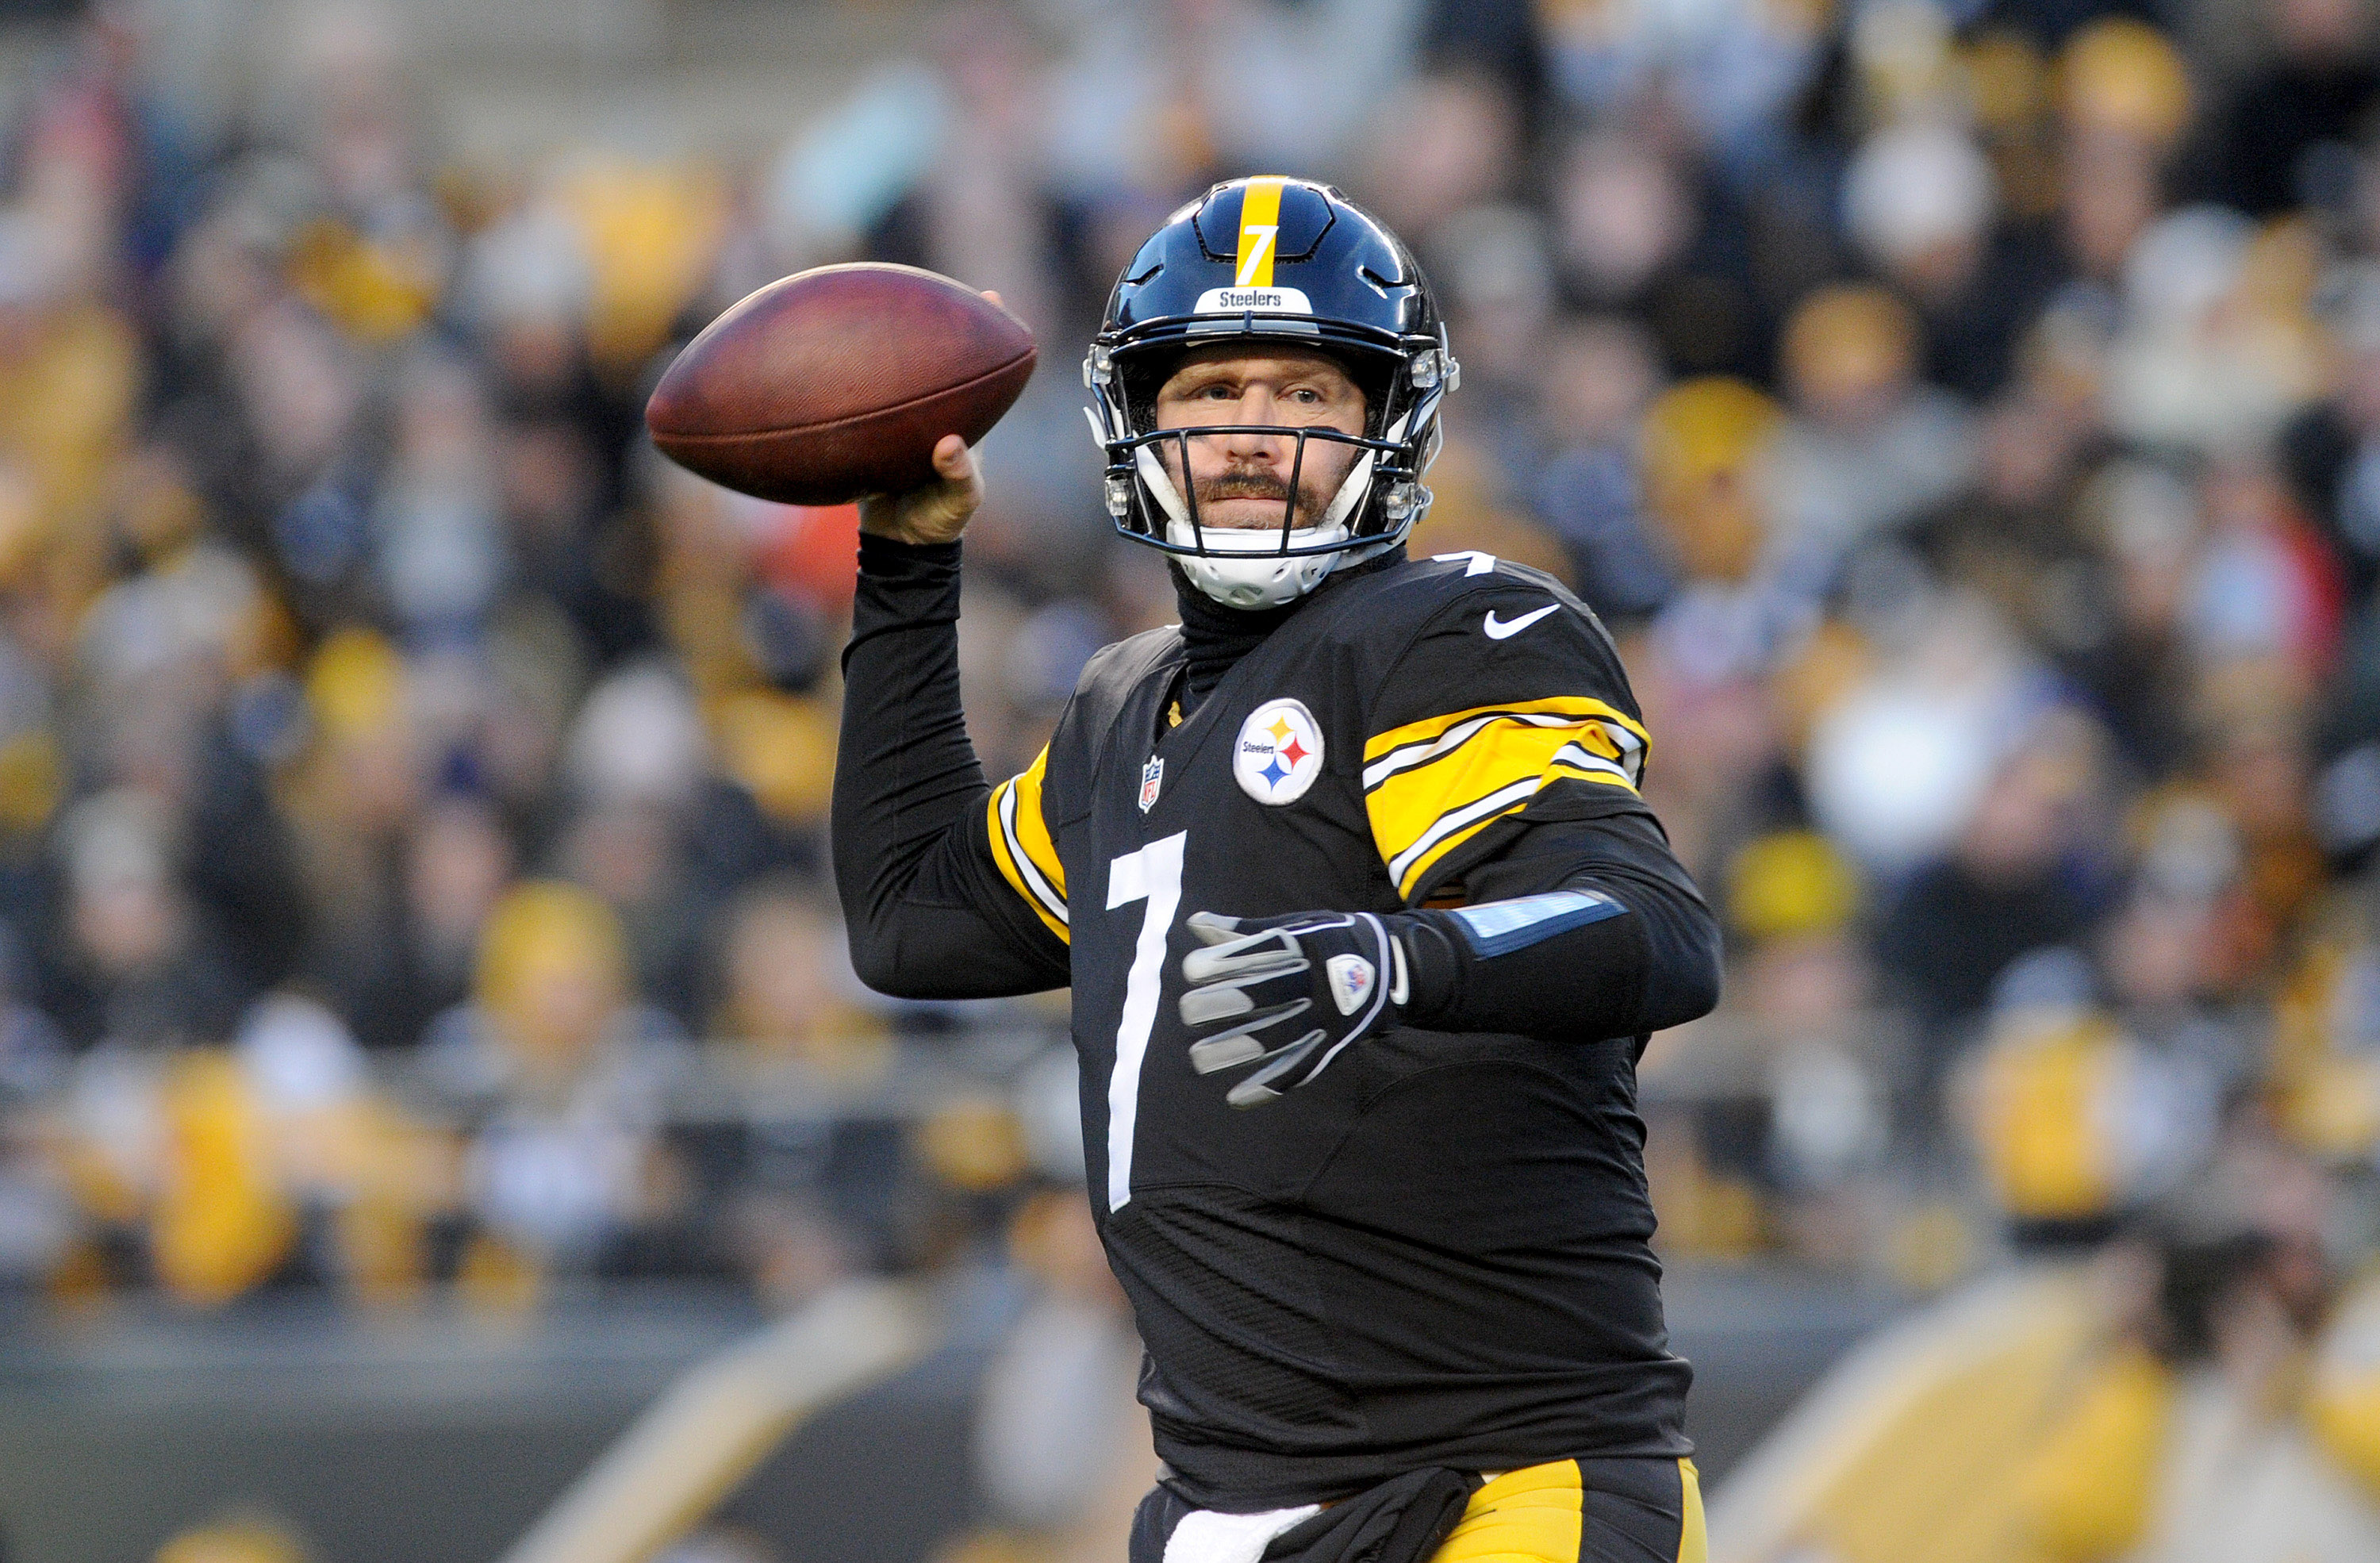 d5ad47110 Pre-NFL Draft Steelers Stock Report: See whose stock is rising and falling